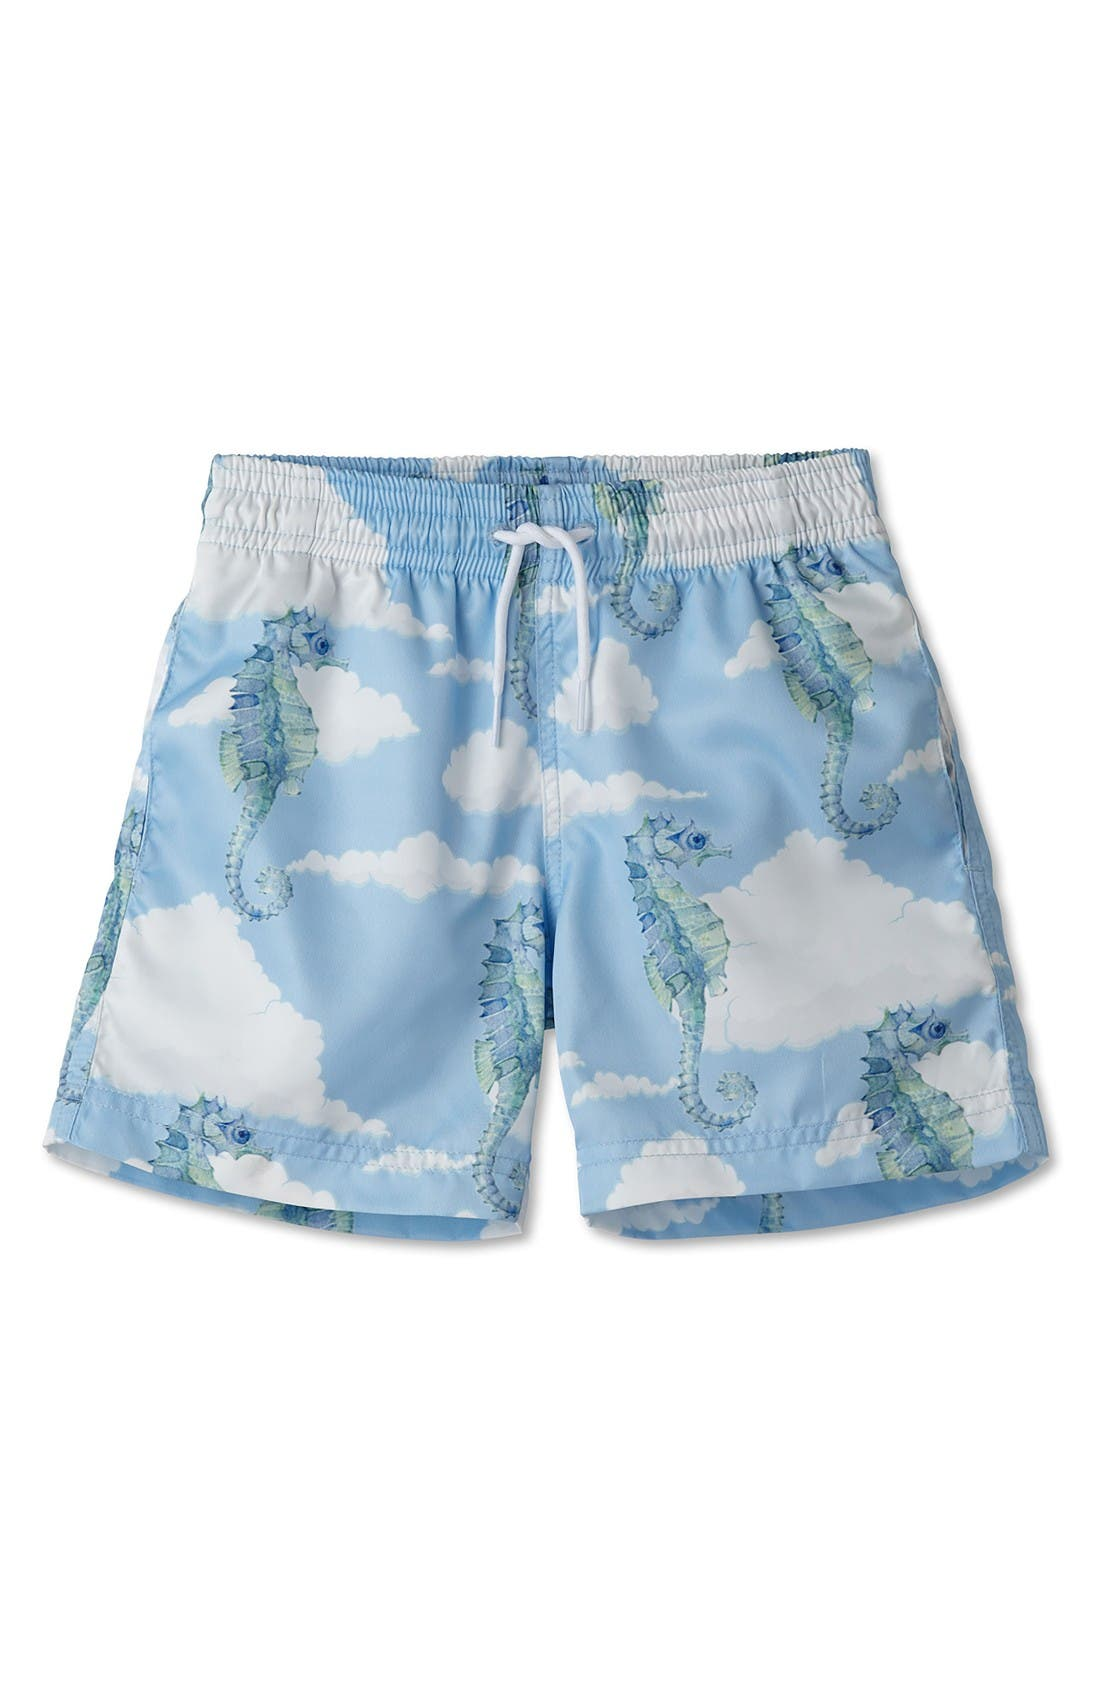 Main Image - Stella Cove Seahorse Swim Trunks (Toddler Boys & Little Boys)